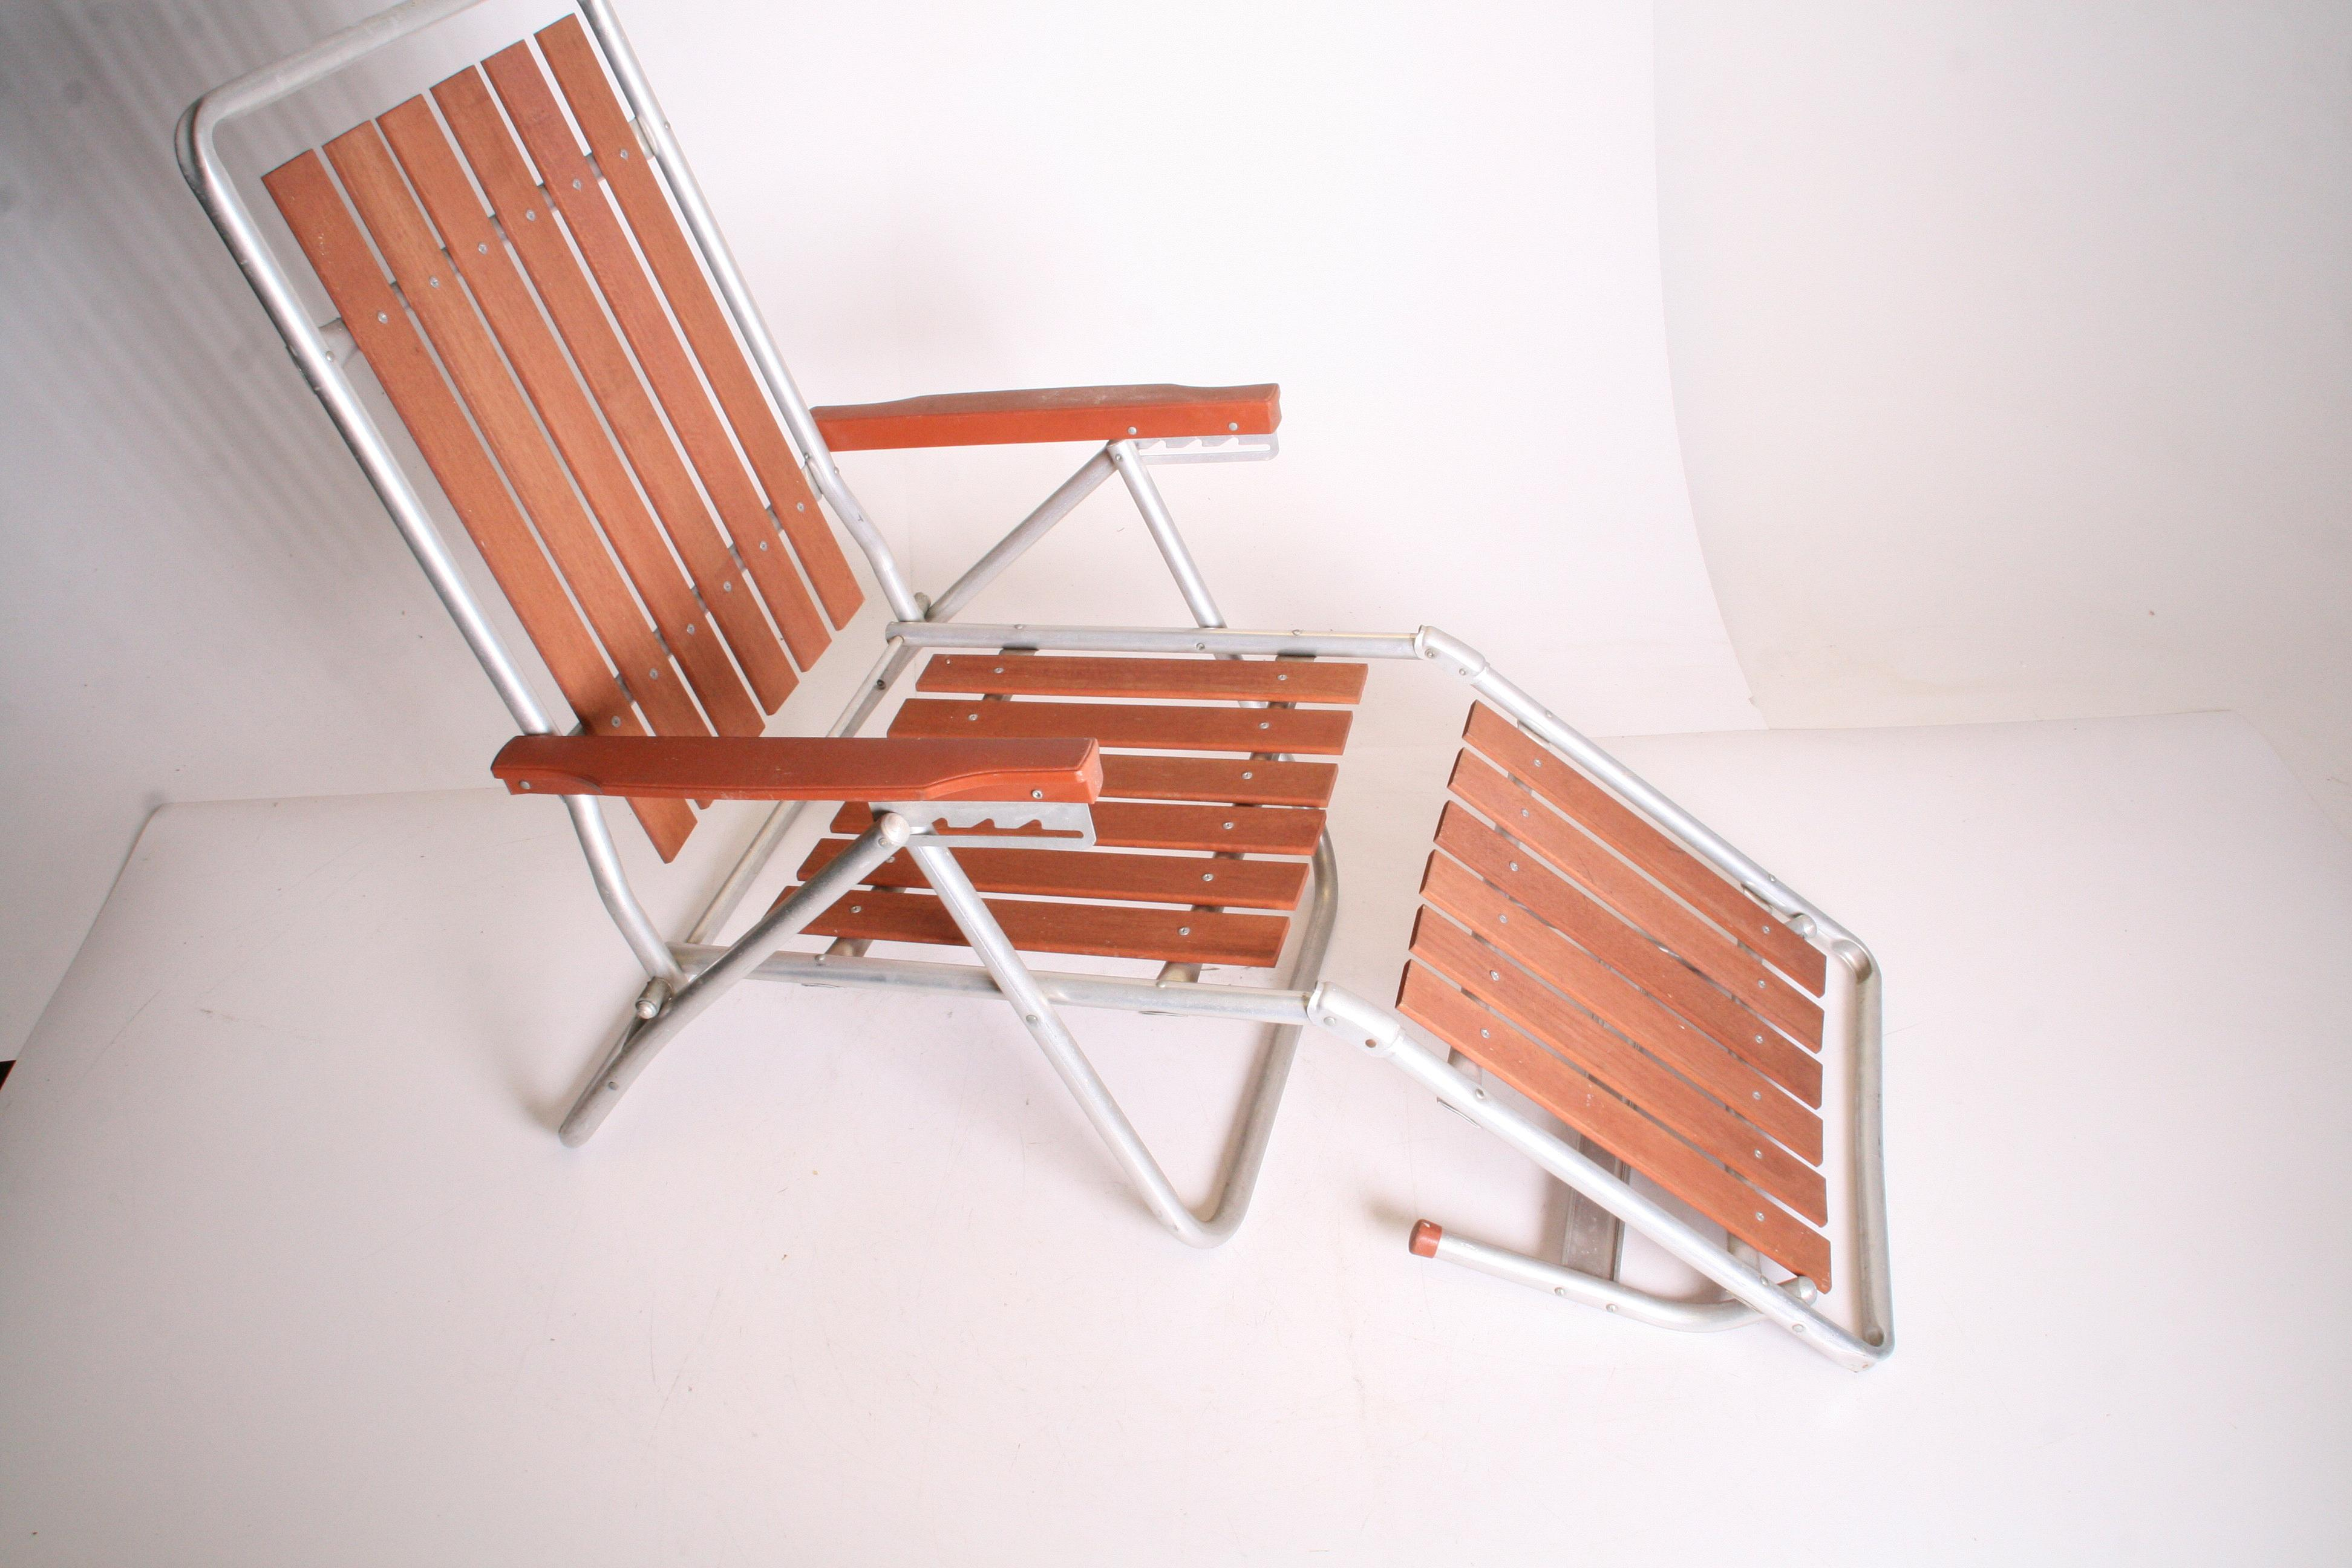 Ordinaire Mid Century Redwood Aluminum Folding Chaise Lounge Chair For Sale   Image 4  Of 11